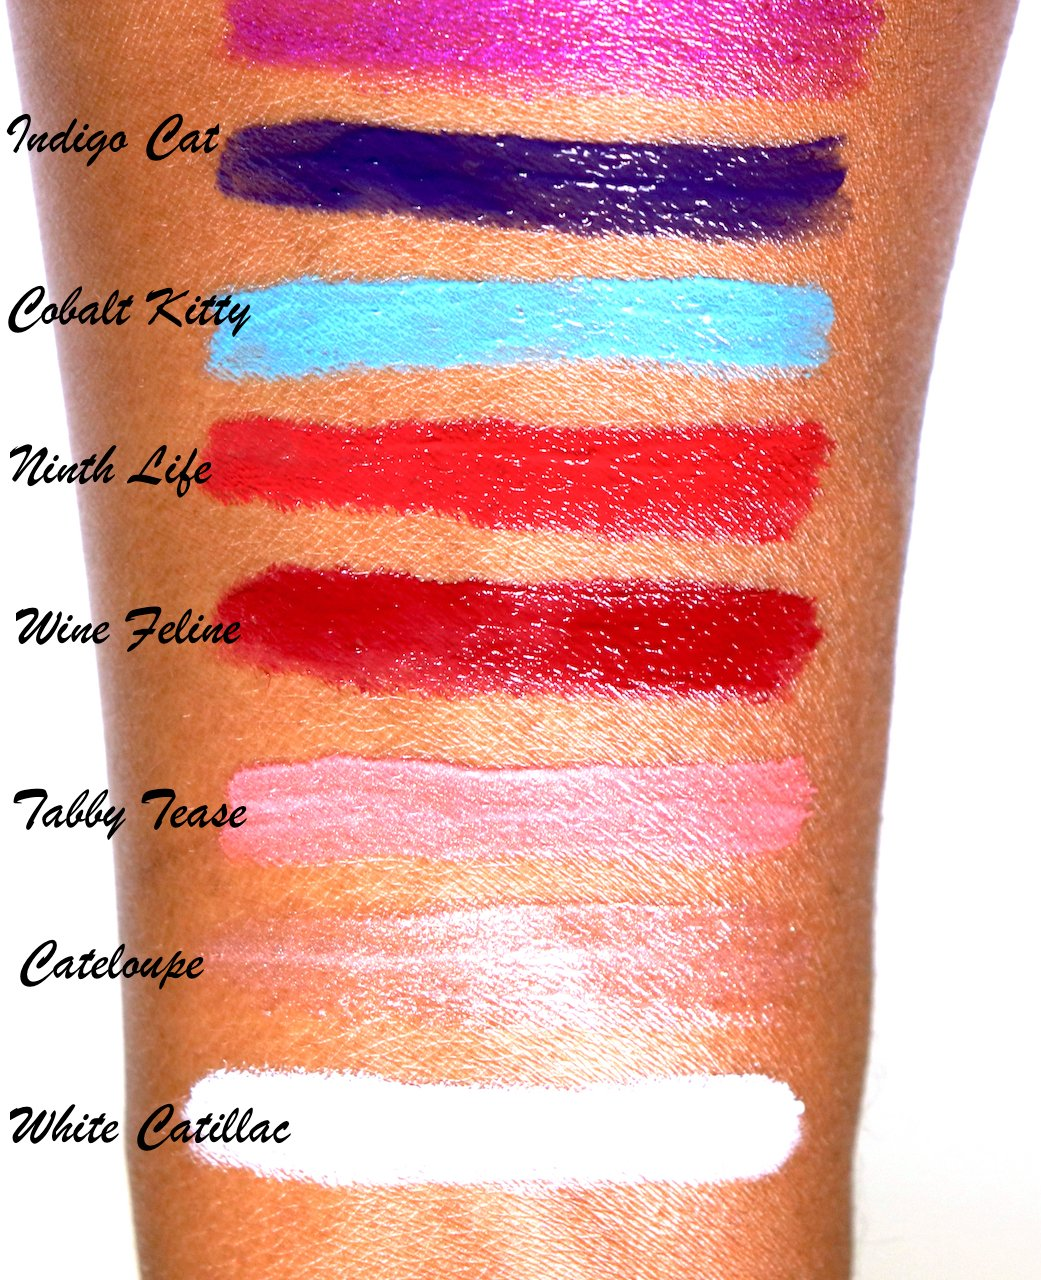 CoverGirl Katy Kat Gloss Swatches Dark Skin